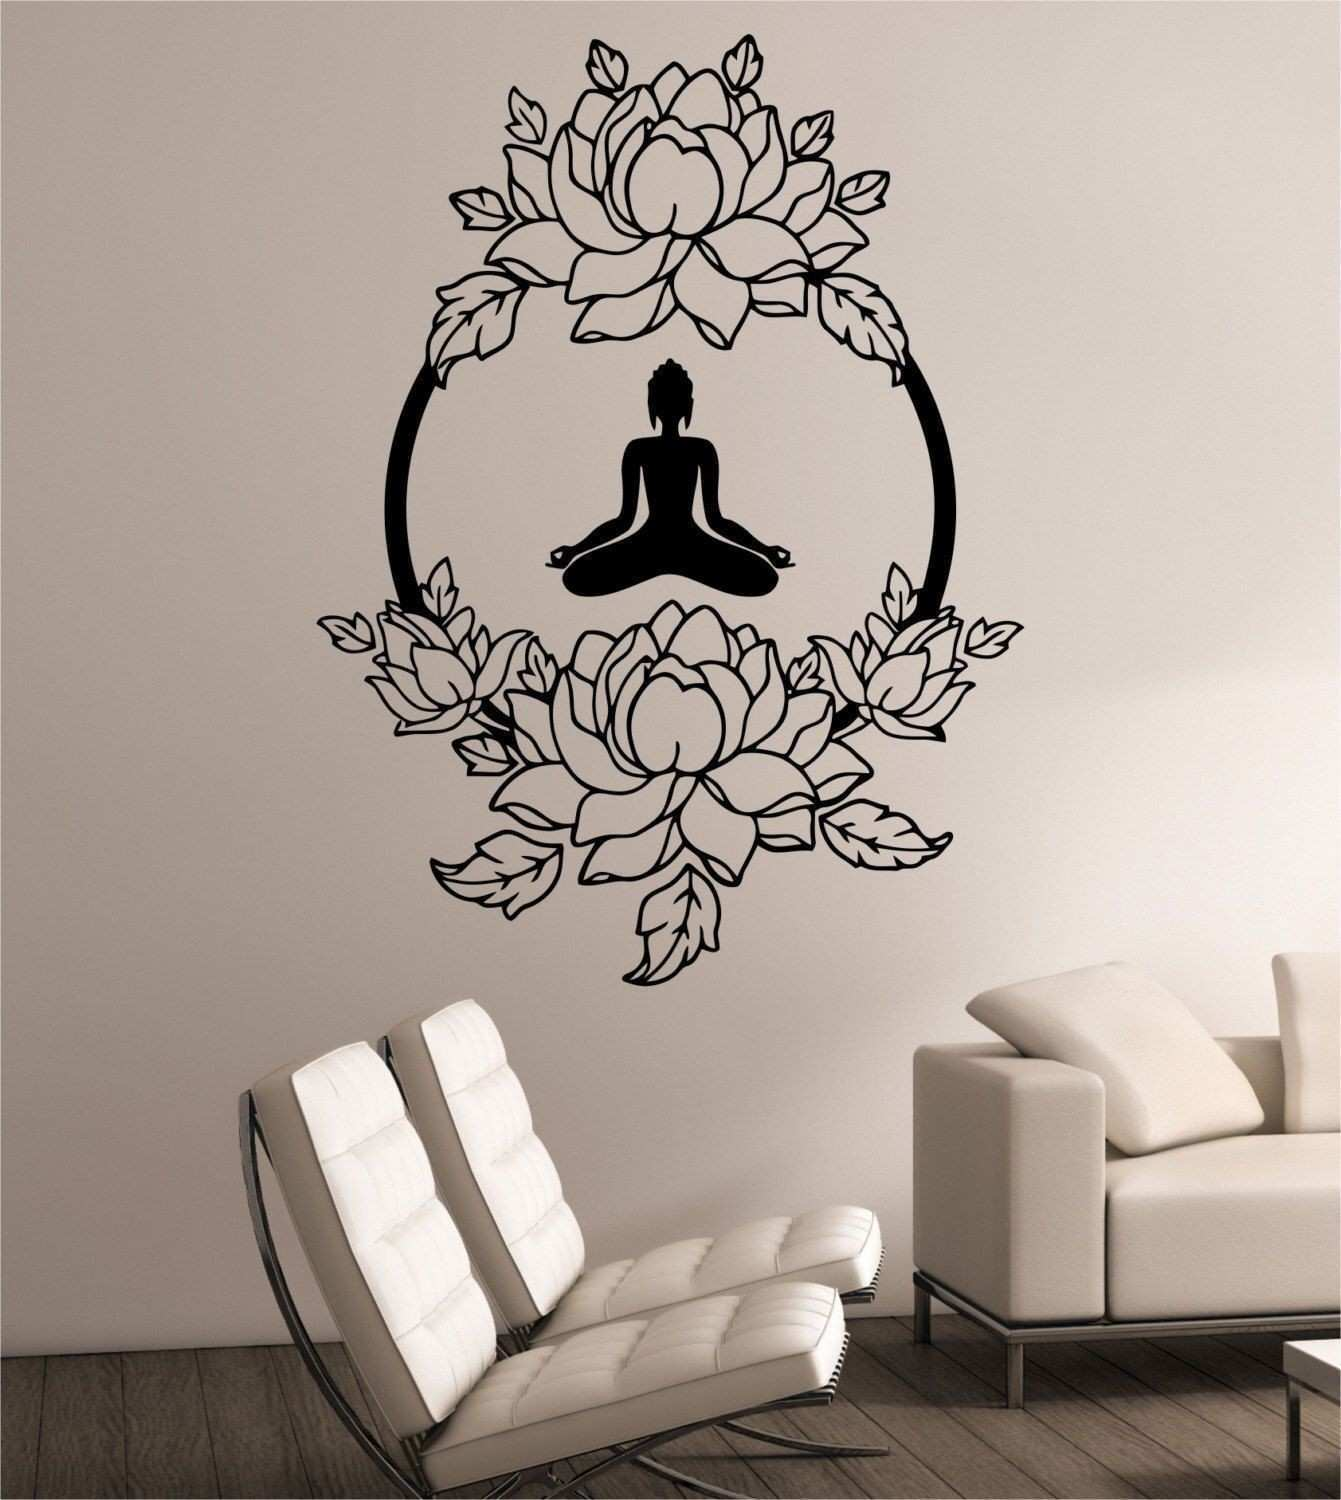 Interior Design Studio Apartment New Wall Decal Luxury 1 Kirkland